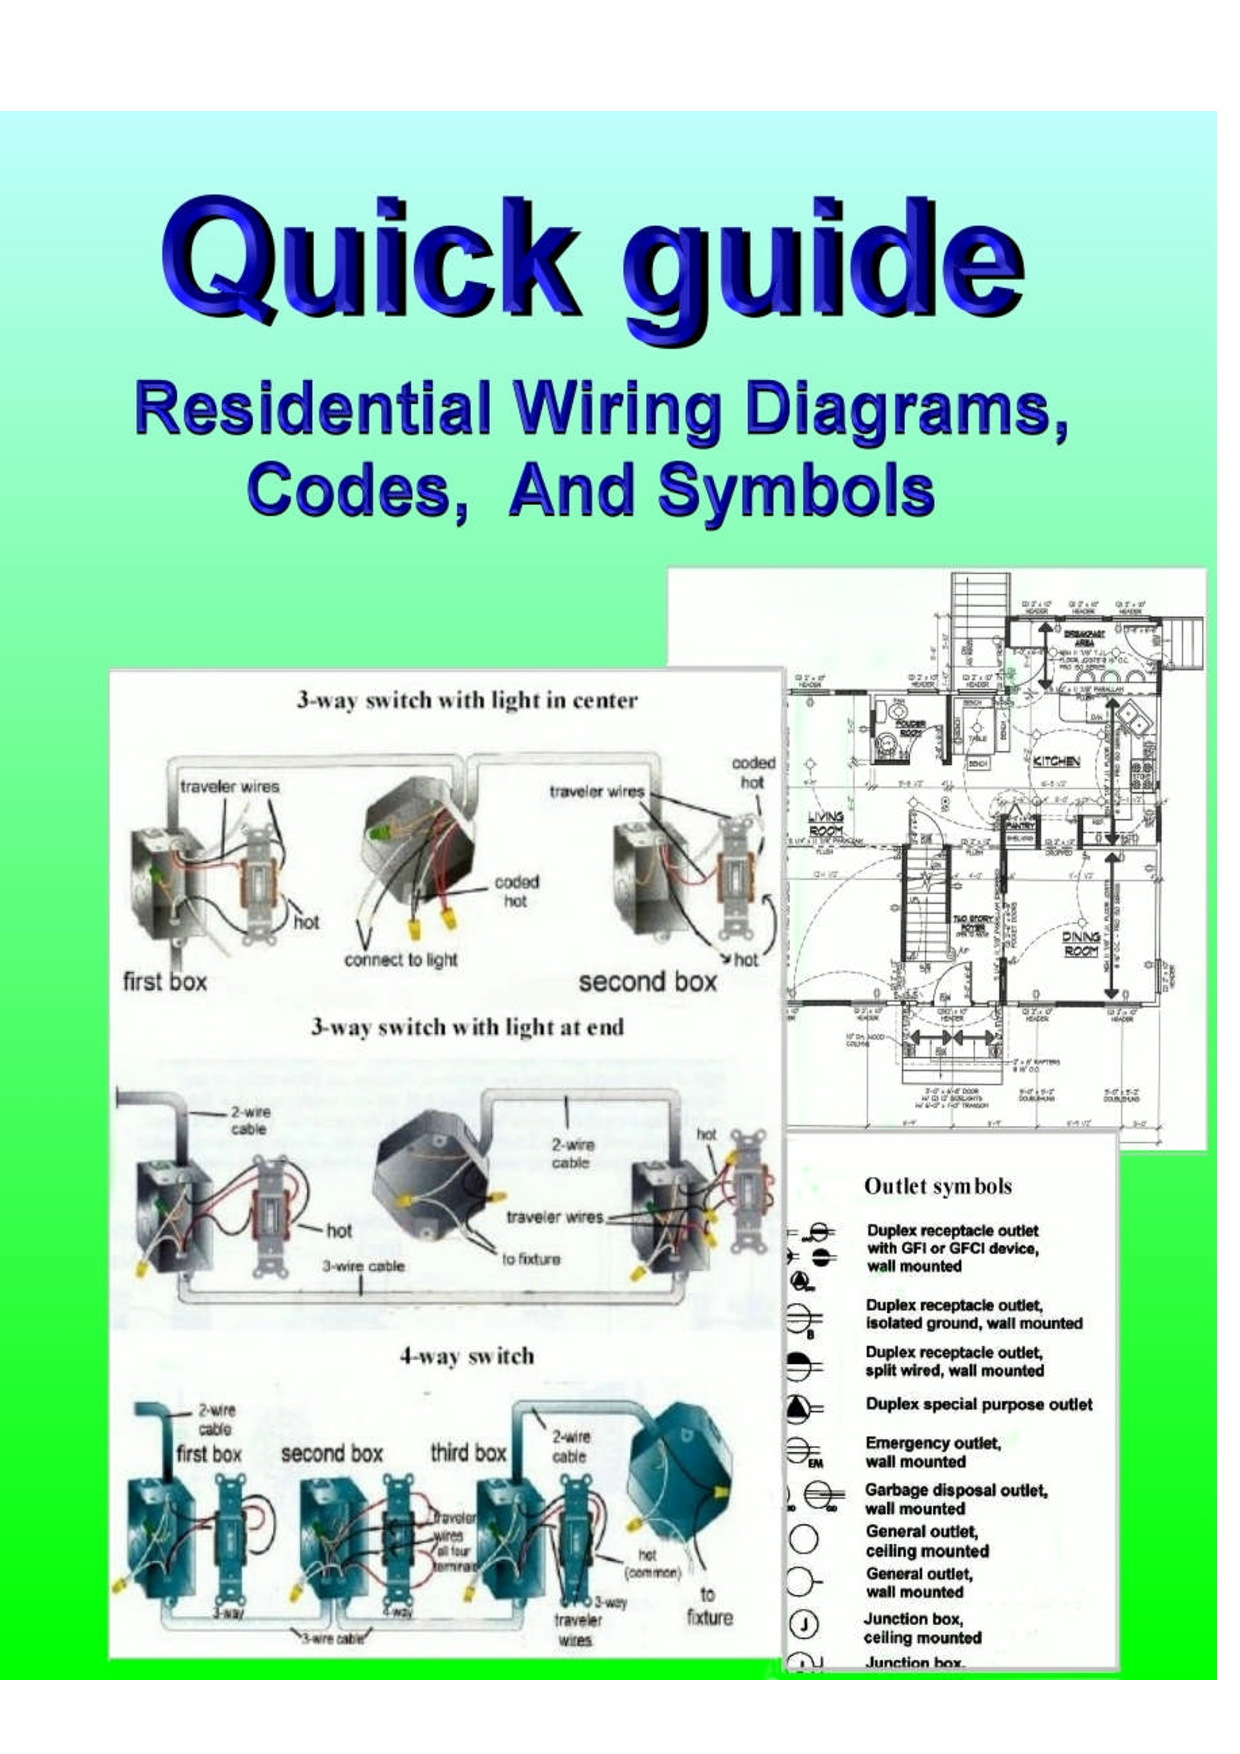 hight resolution of a step by step home wiring guide with diagrams symbols and electrical codes